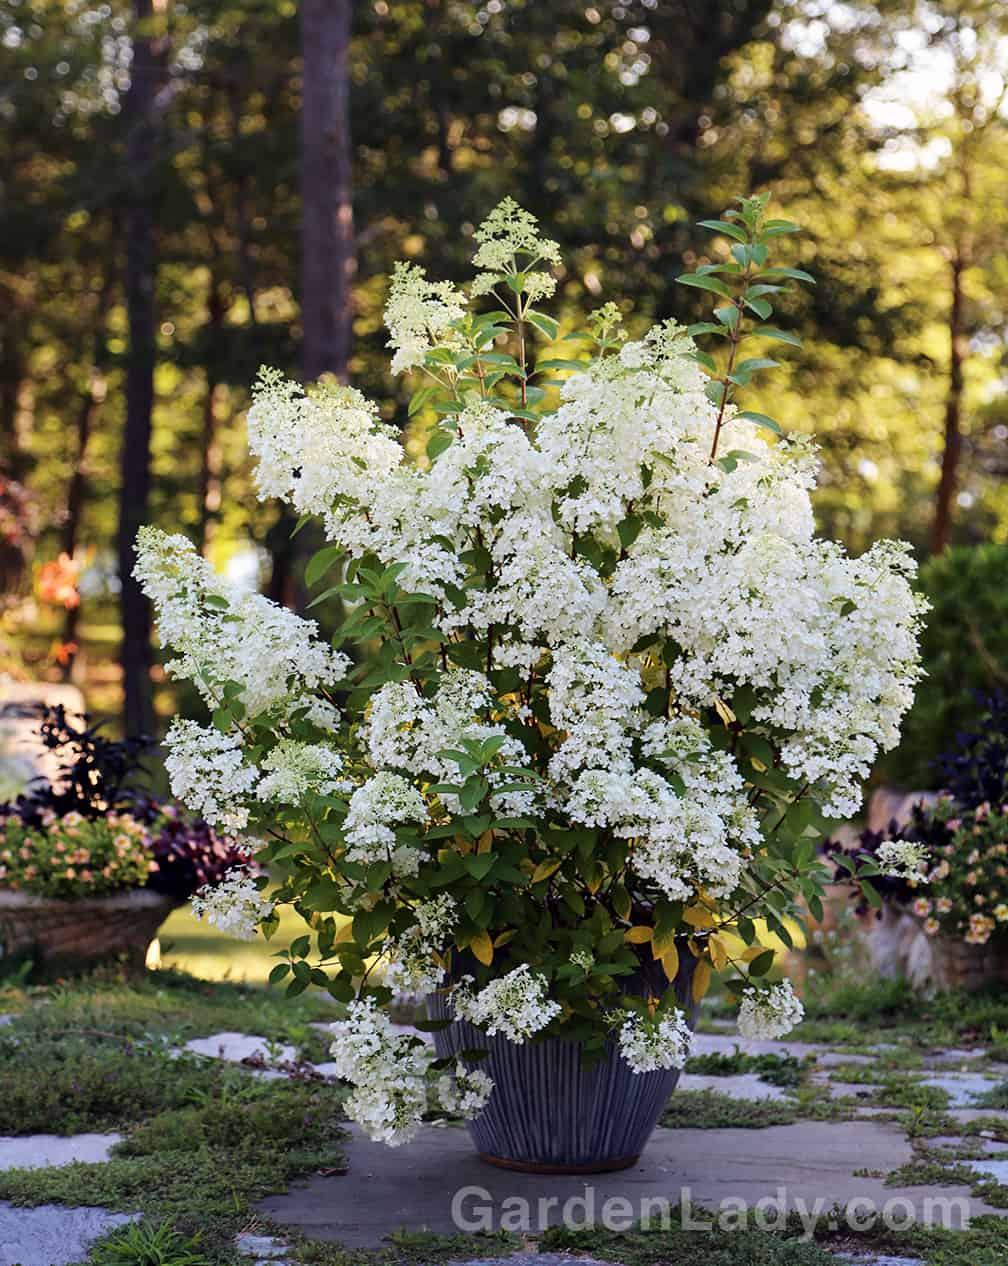 You can over-winter Hydrangea paniculata plants in pots as well. This is a Bobo, one of my favorite short paniculata varieties. These white-flowering hydrangeas bloom on new growth so you can shape them a bit in the spring if desired.